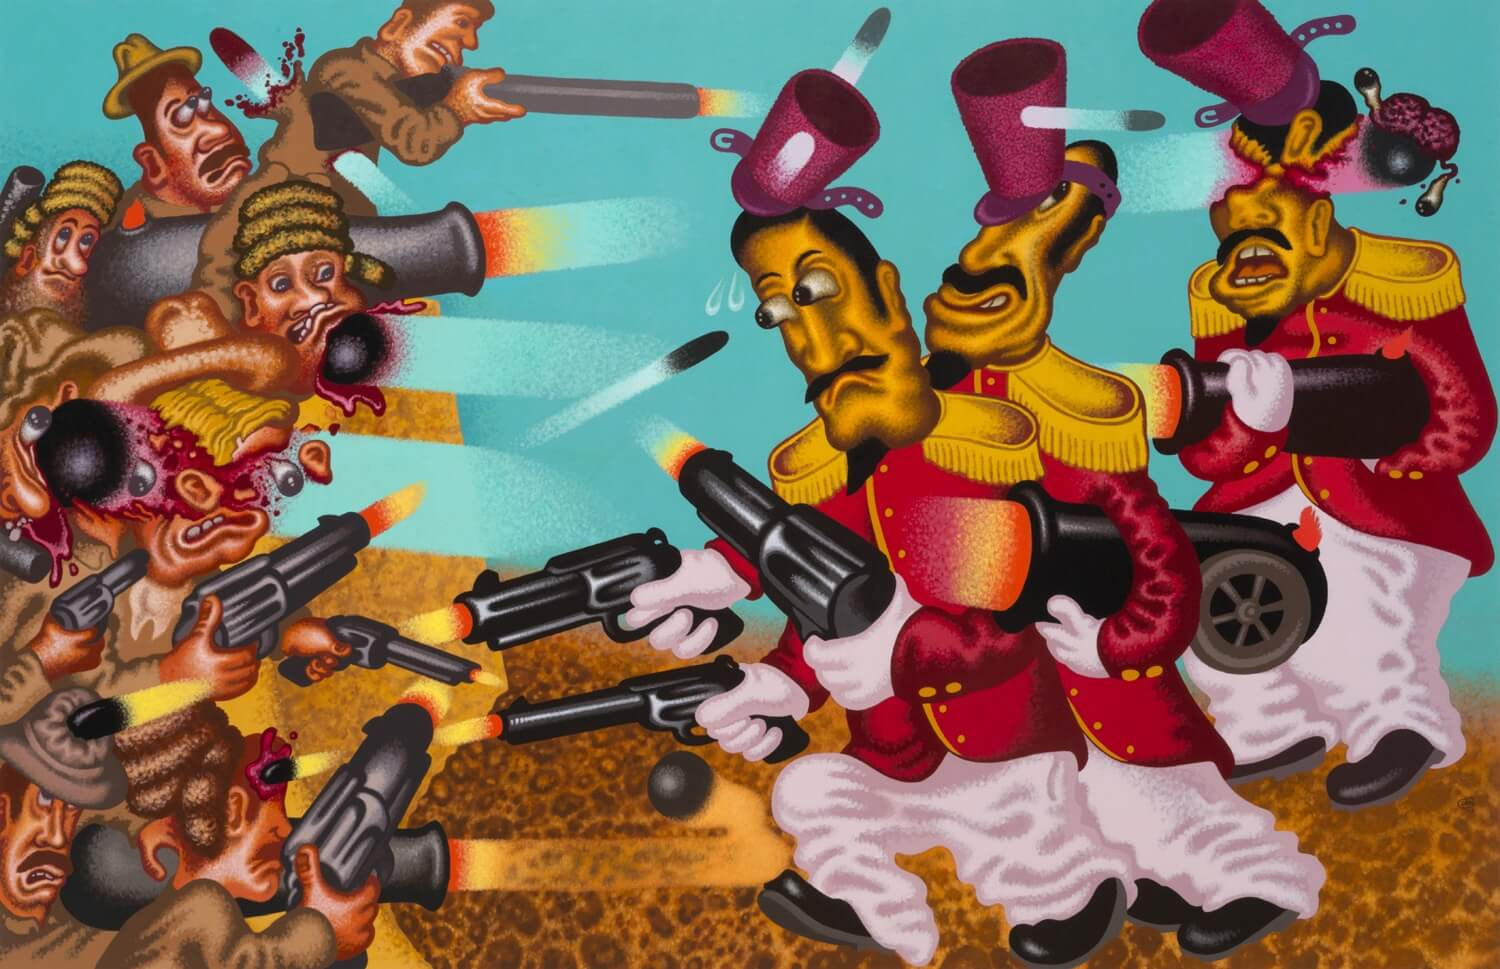 Peter Saul, Return to the Alamo, 78 x 120 inches, acrylic on canvas, 2017 (courtesy of Mary Boone Gallery)